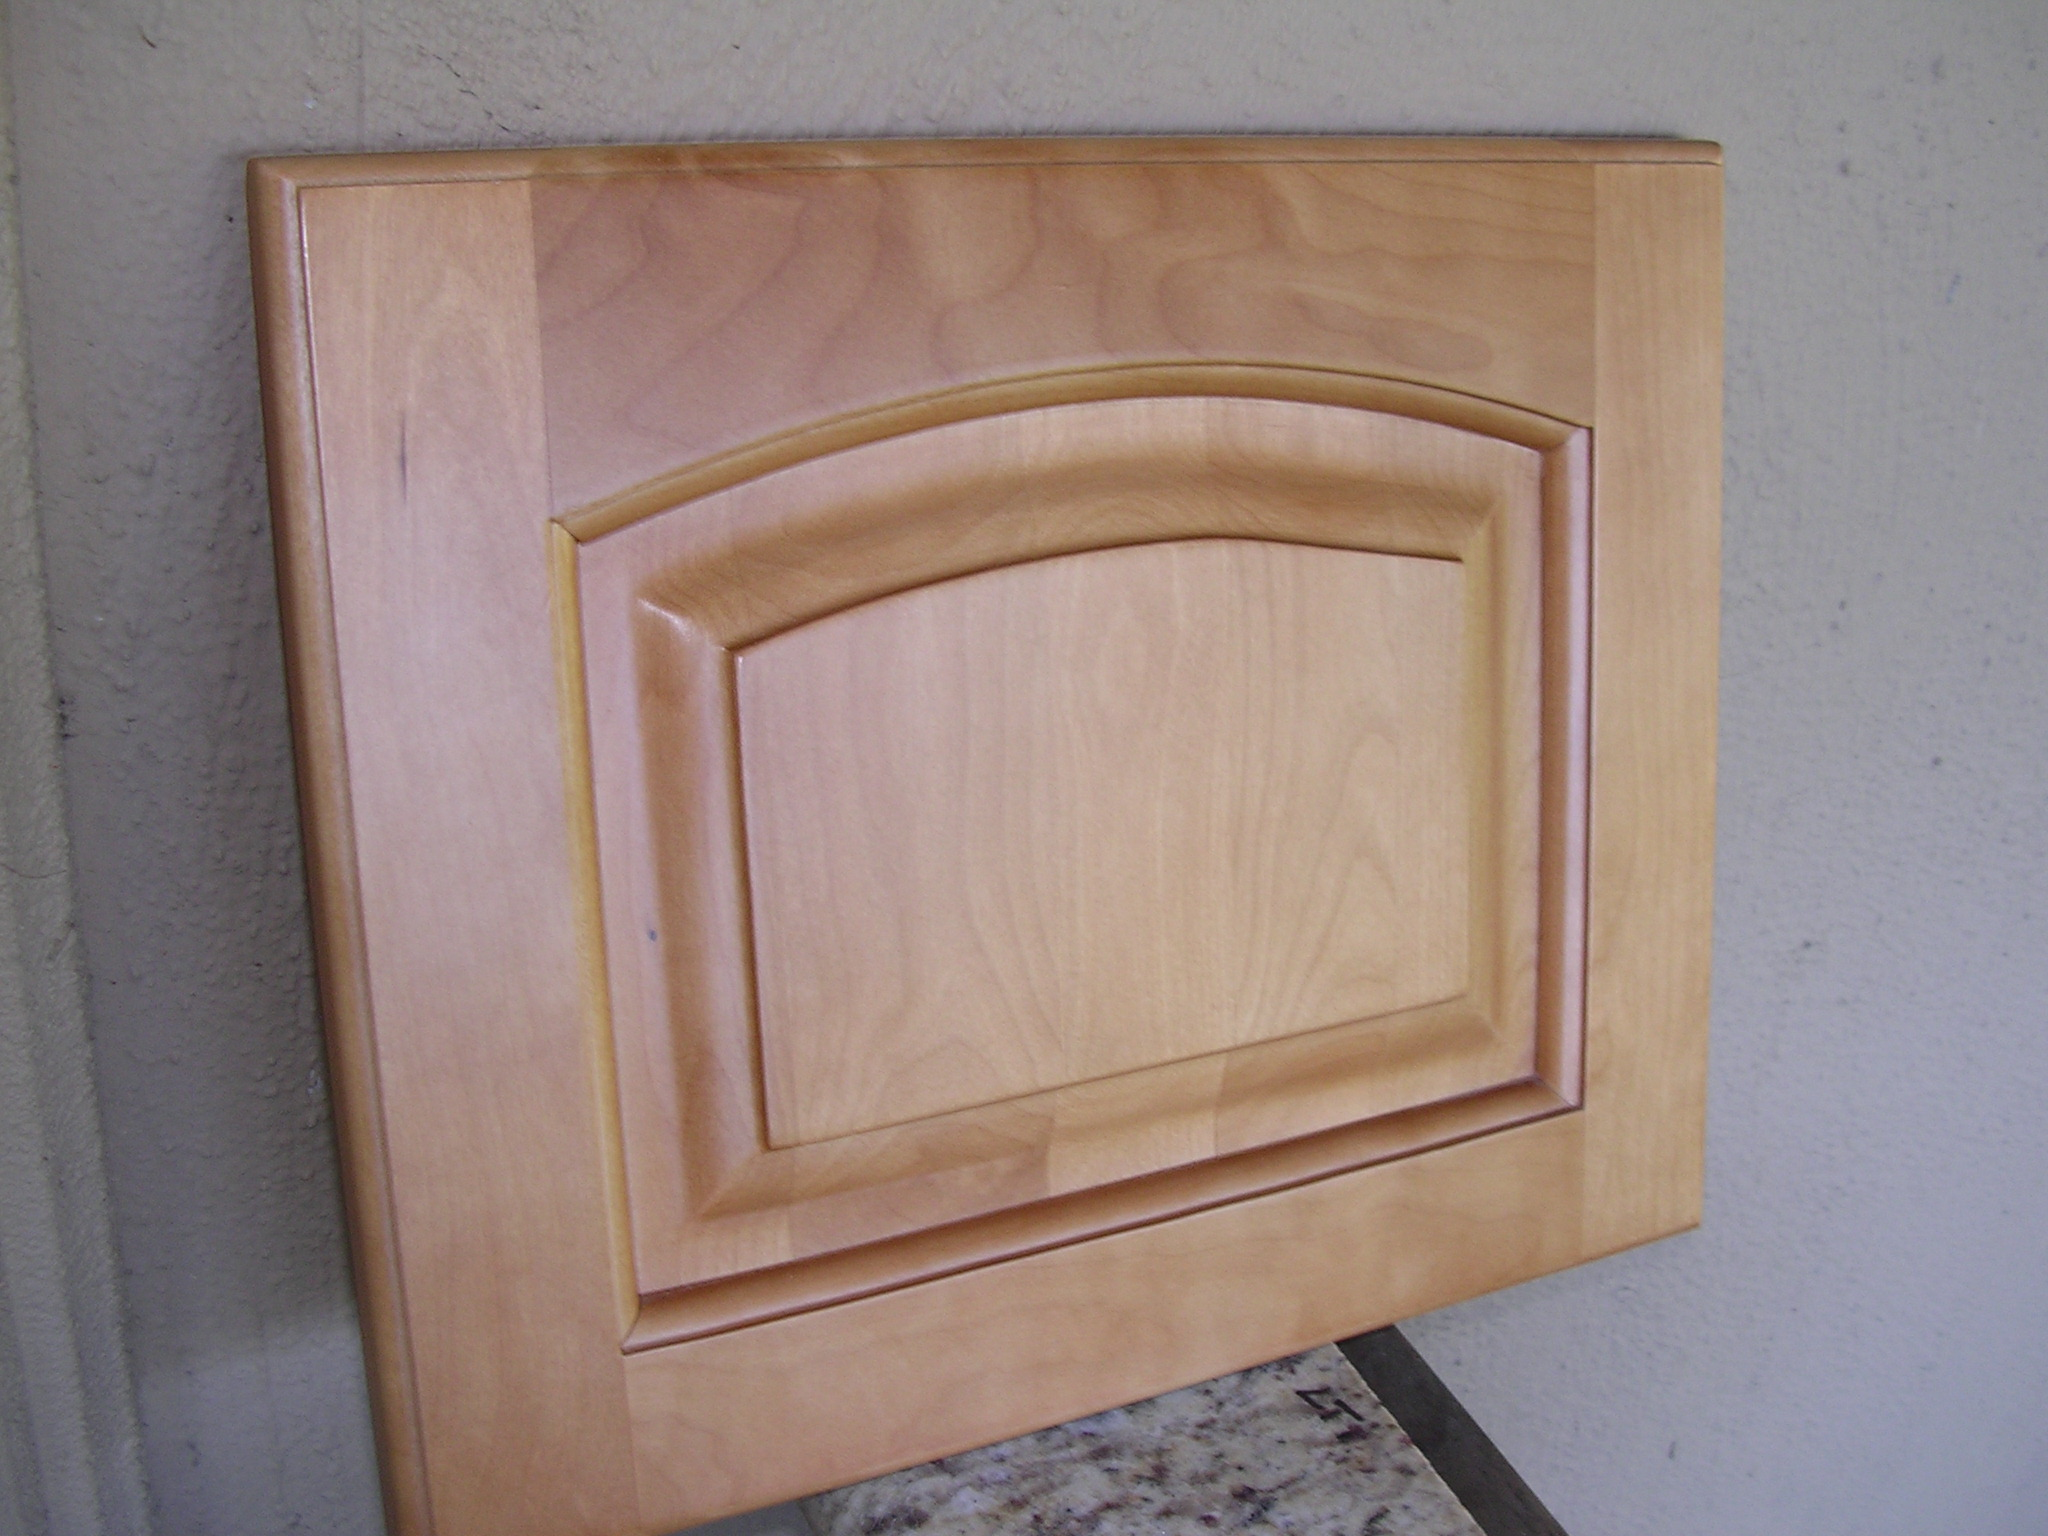 Rta cabinet broker 5a light honey birch arched kitchen for Arch kitchen cabinets